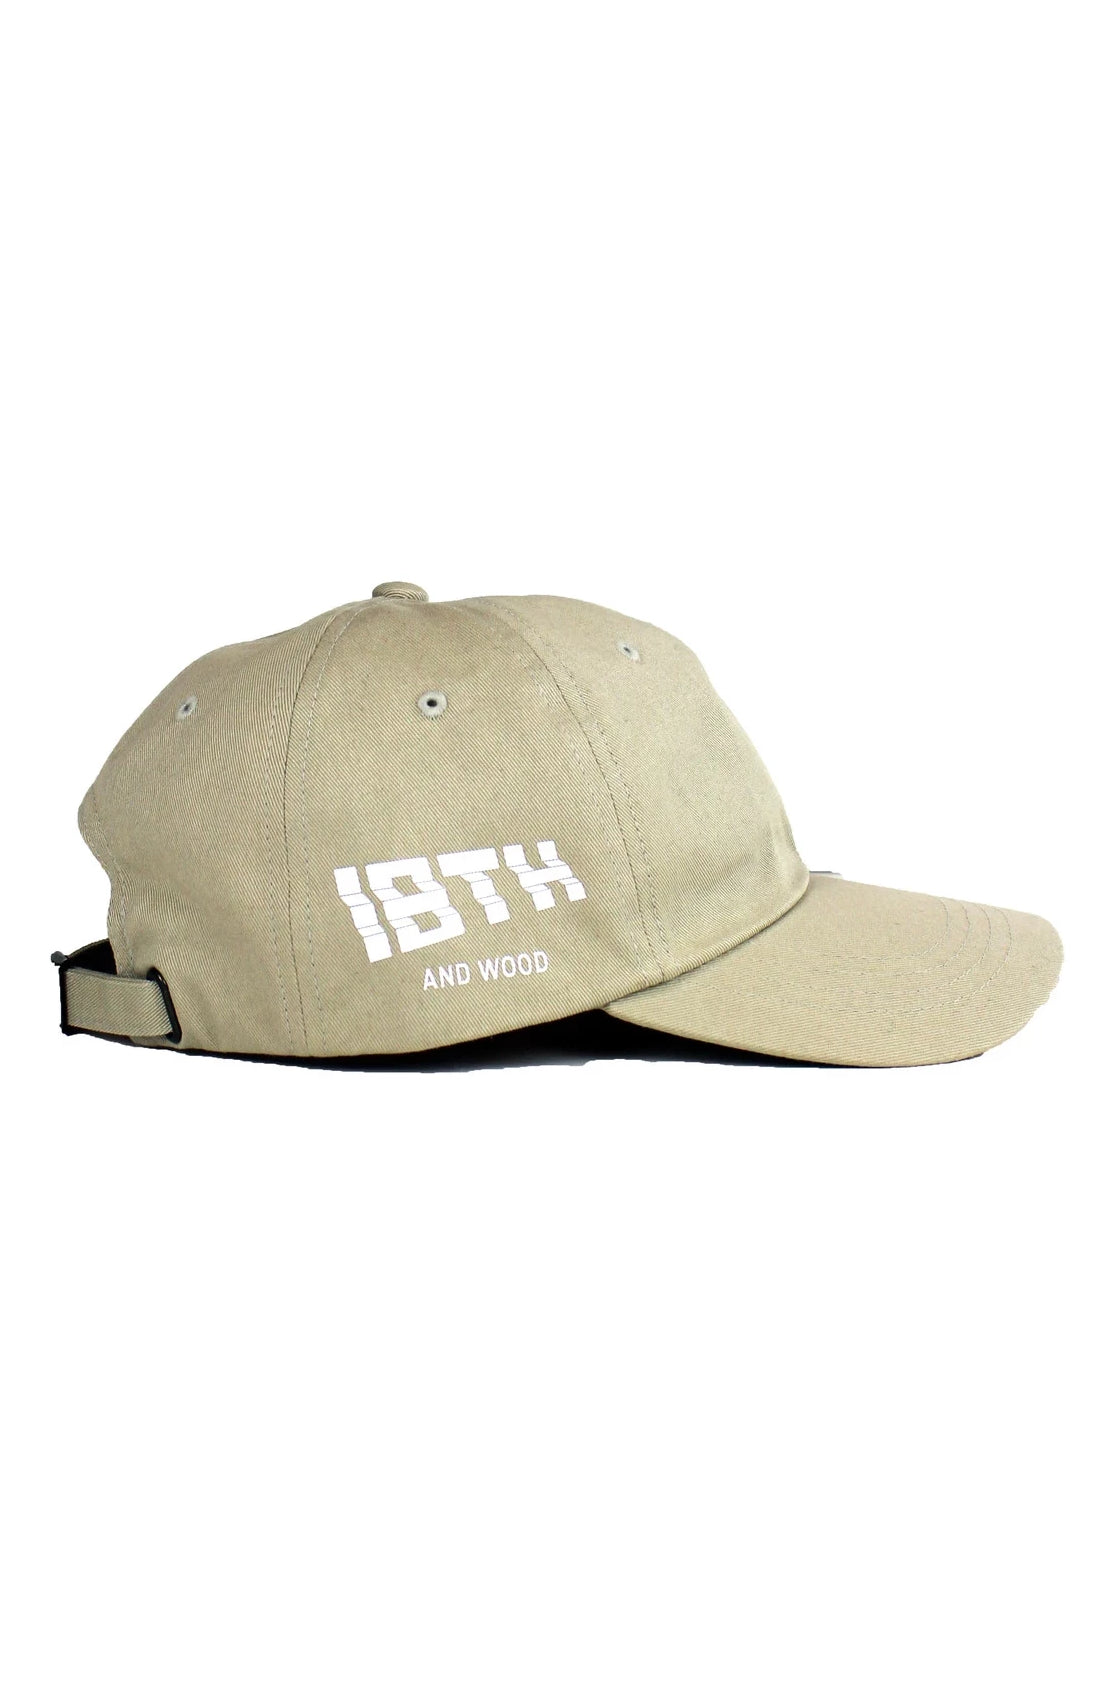 18th & Wood Tan Logo Cap